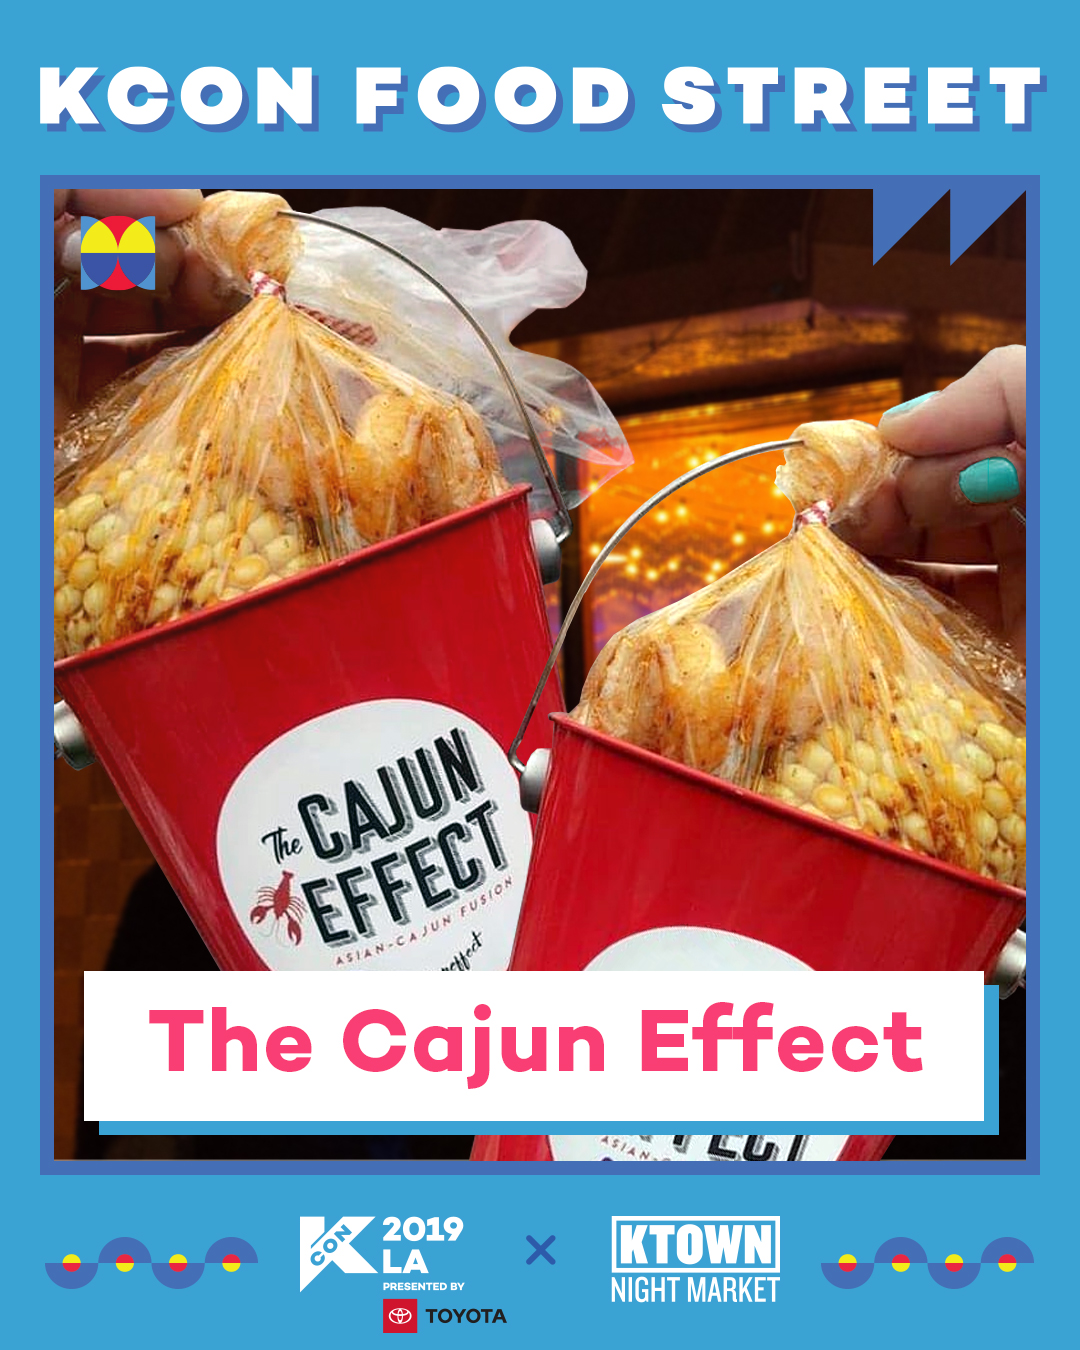 The Cajun Effect (Booth 5)